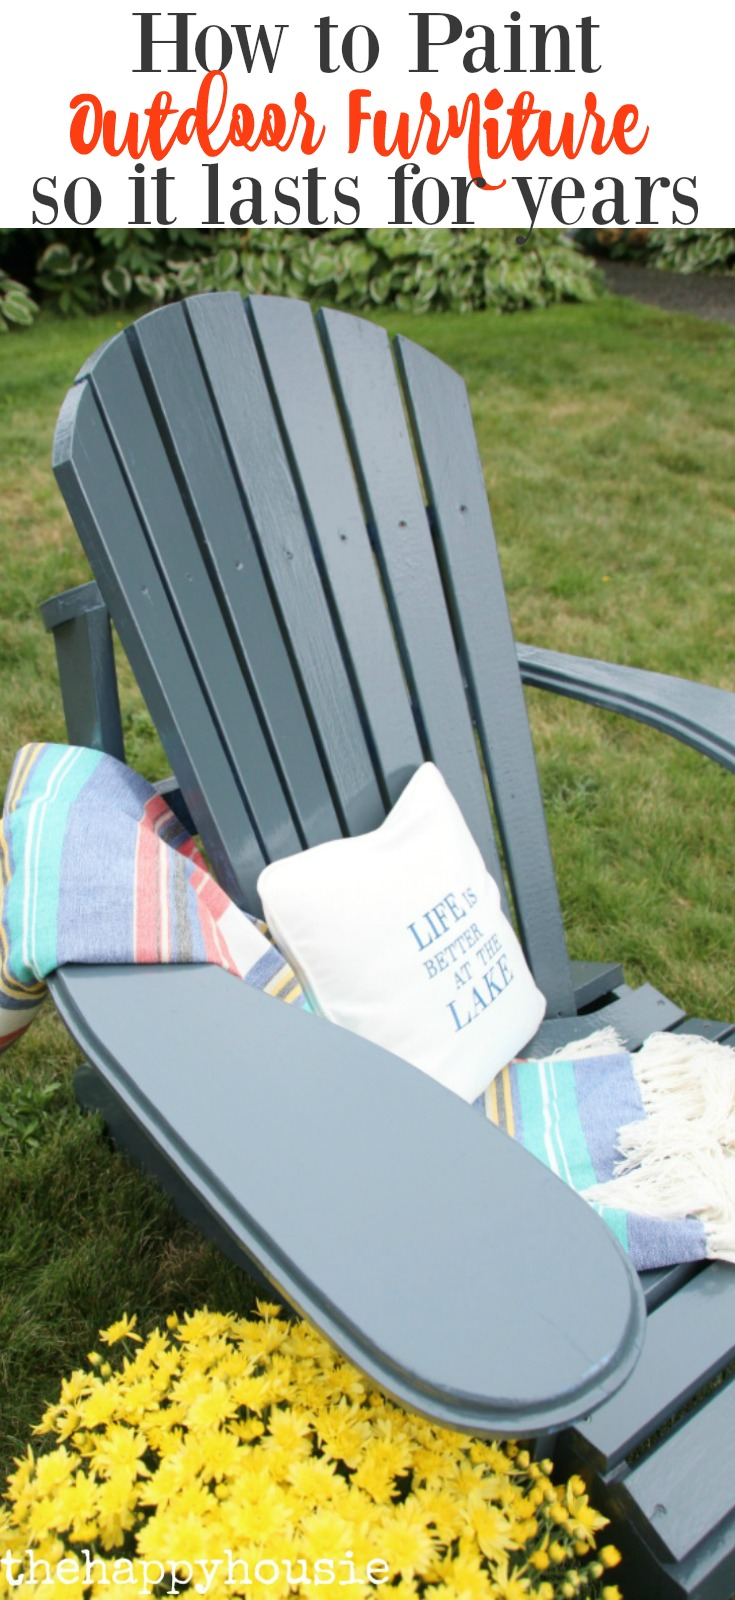 How To Paint Outdoor Furniture So It Lasts For Years The Happy Housie